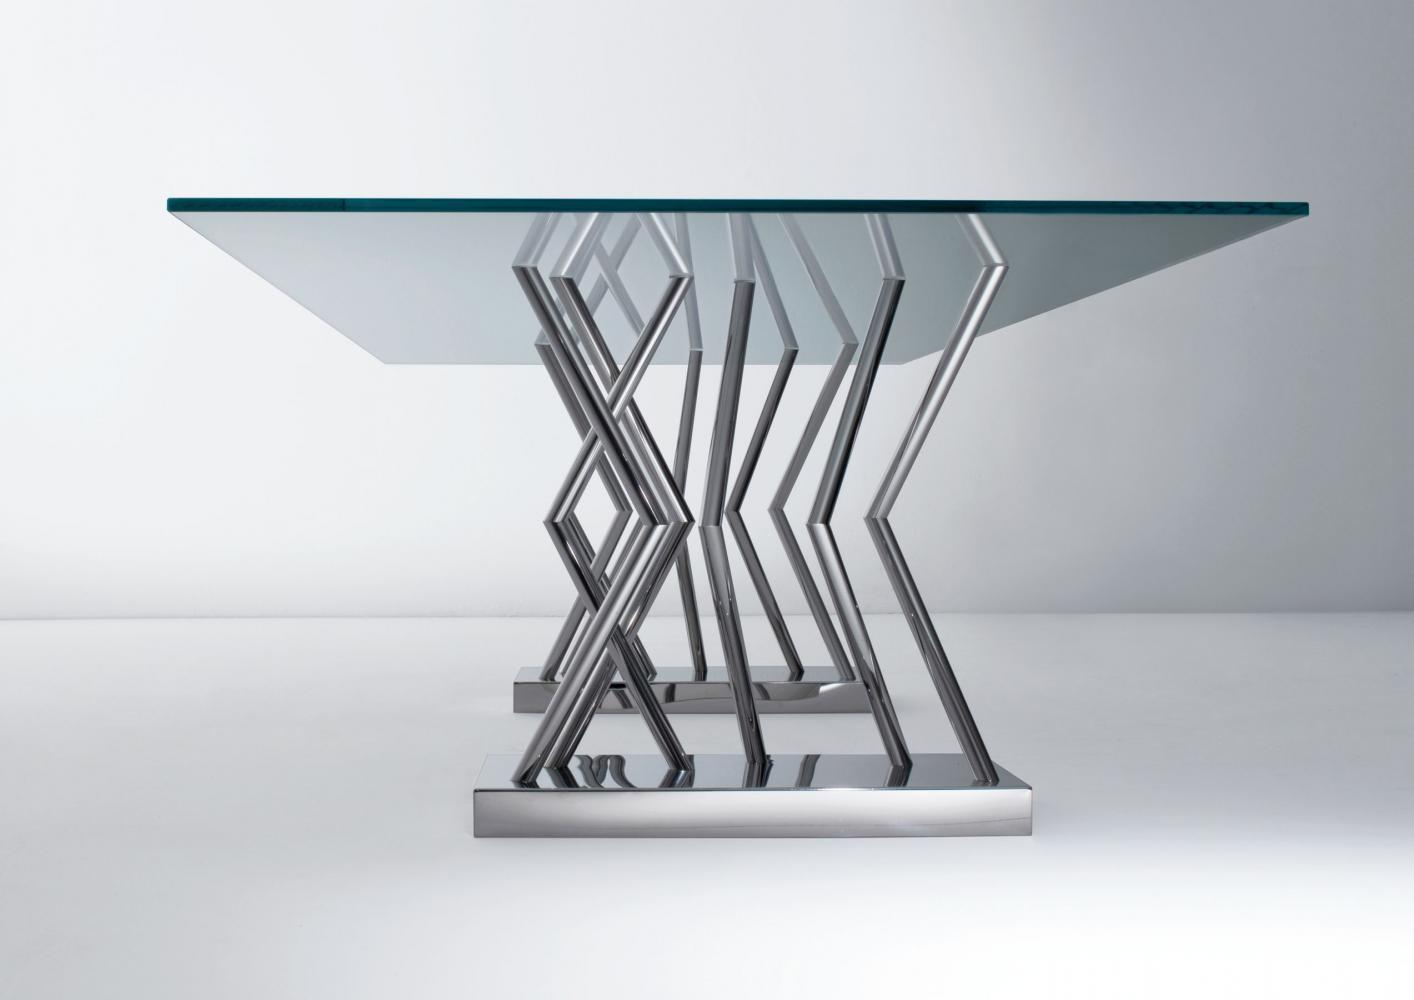 Laurameroni luxury modern made to measure glass or crystal tables for contemporary interior decor and design